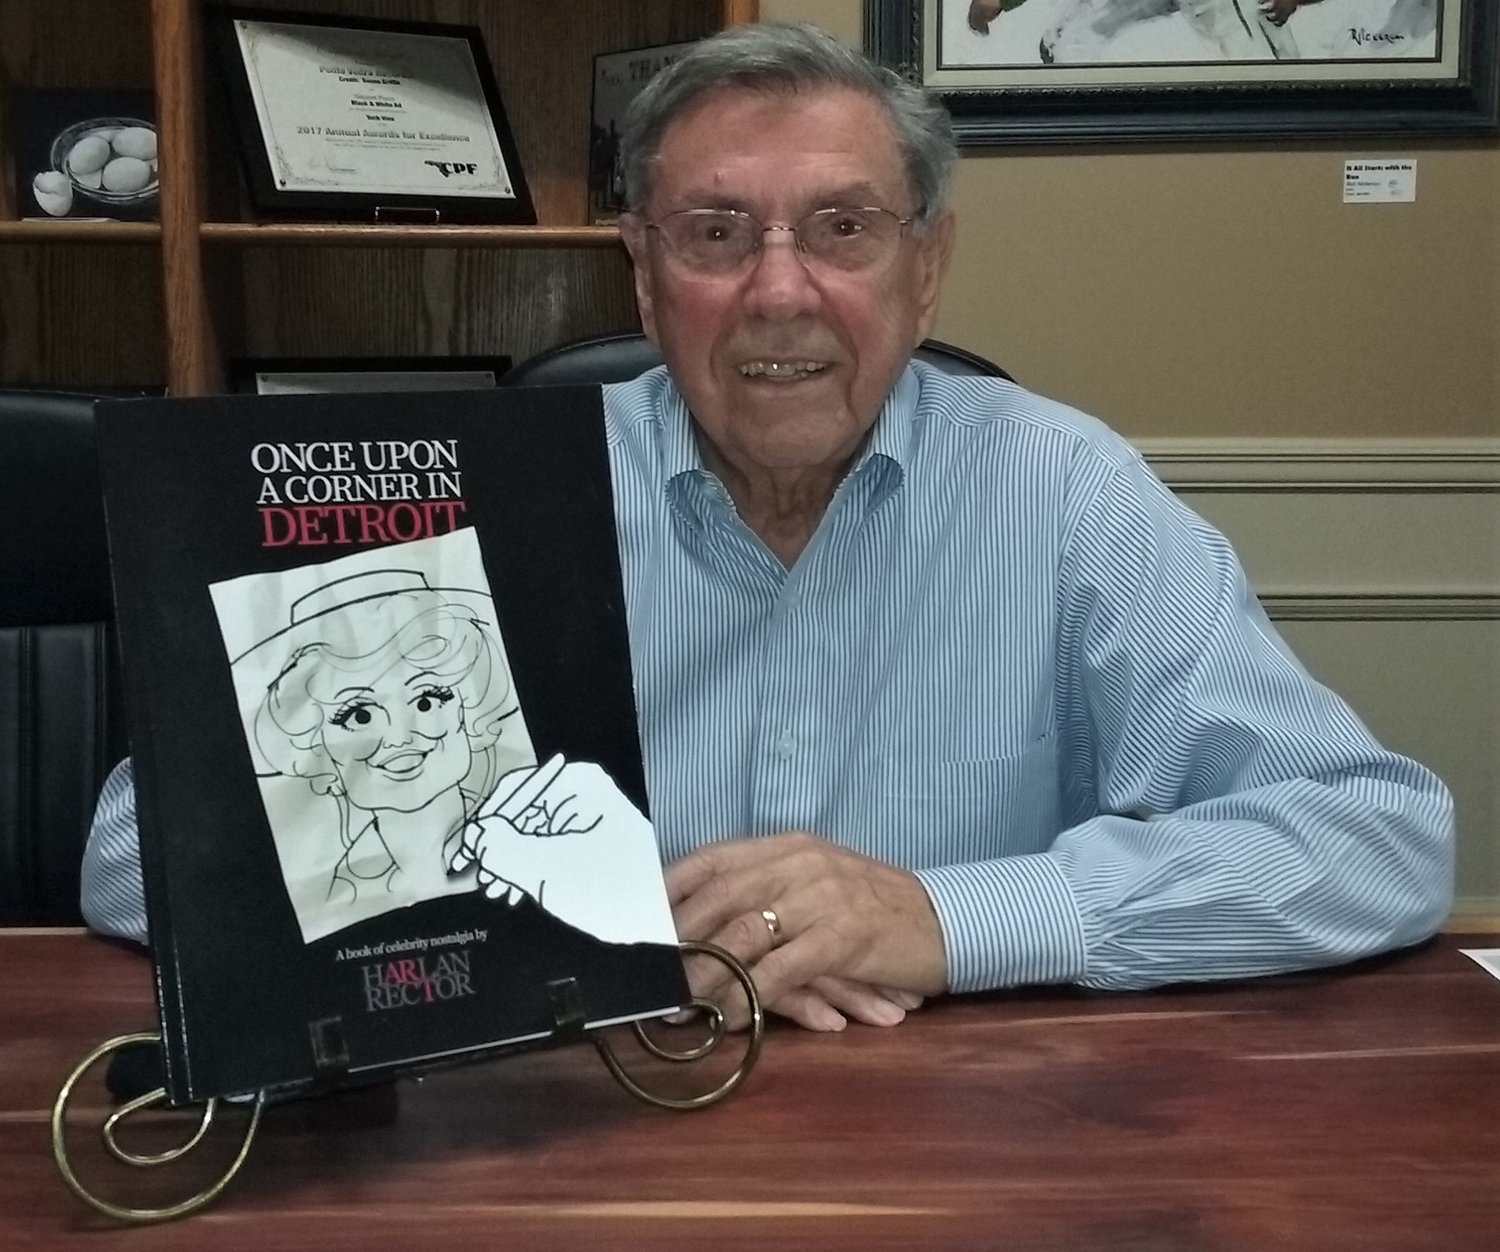 Harlan Rector shows off his book of celebrity caricatures.